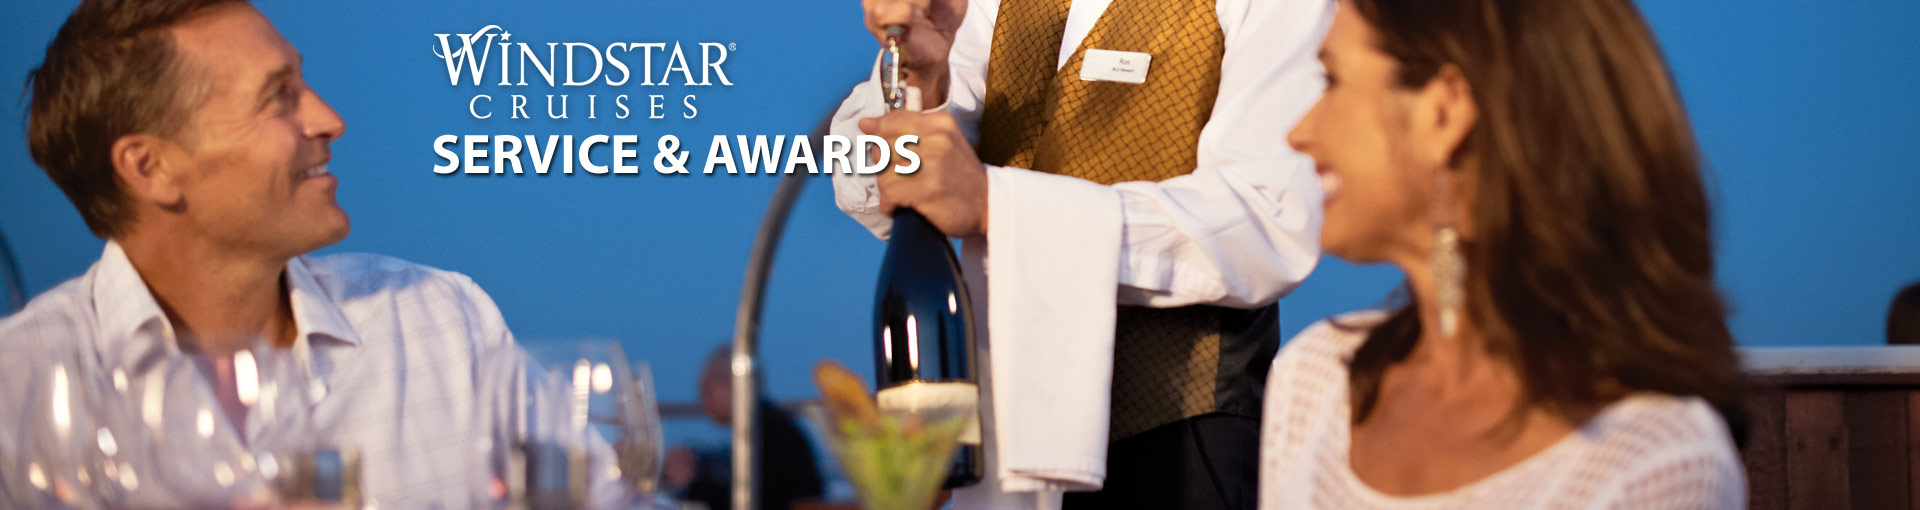 Windstar Cruises Service & Awards